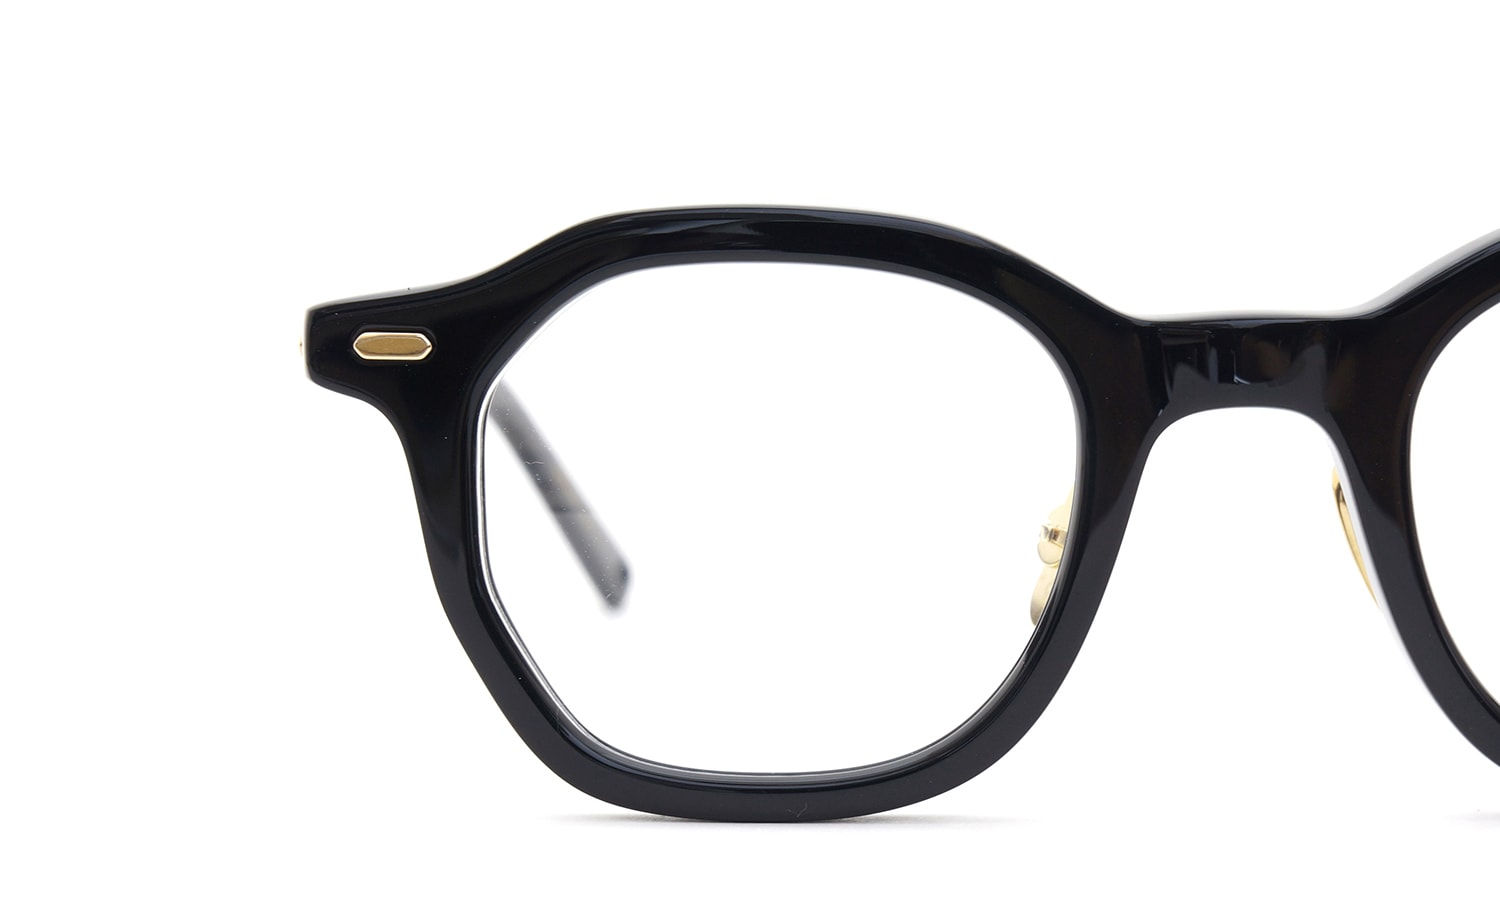 OG × OLIVER GOLDSMITH Re:BETSY 45 リ:ベッツィ 16